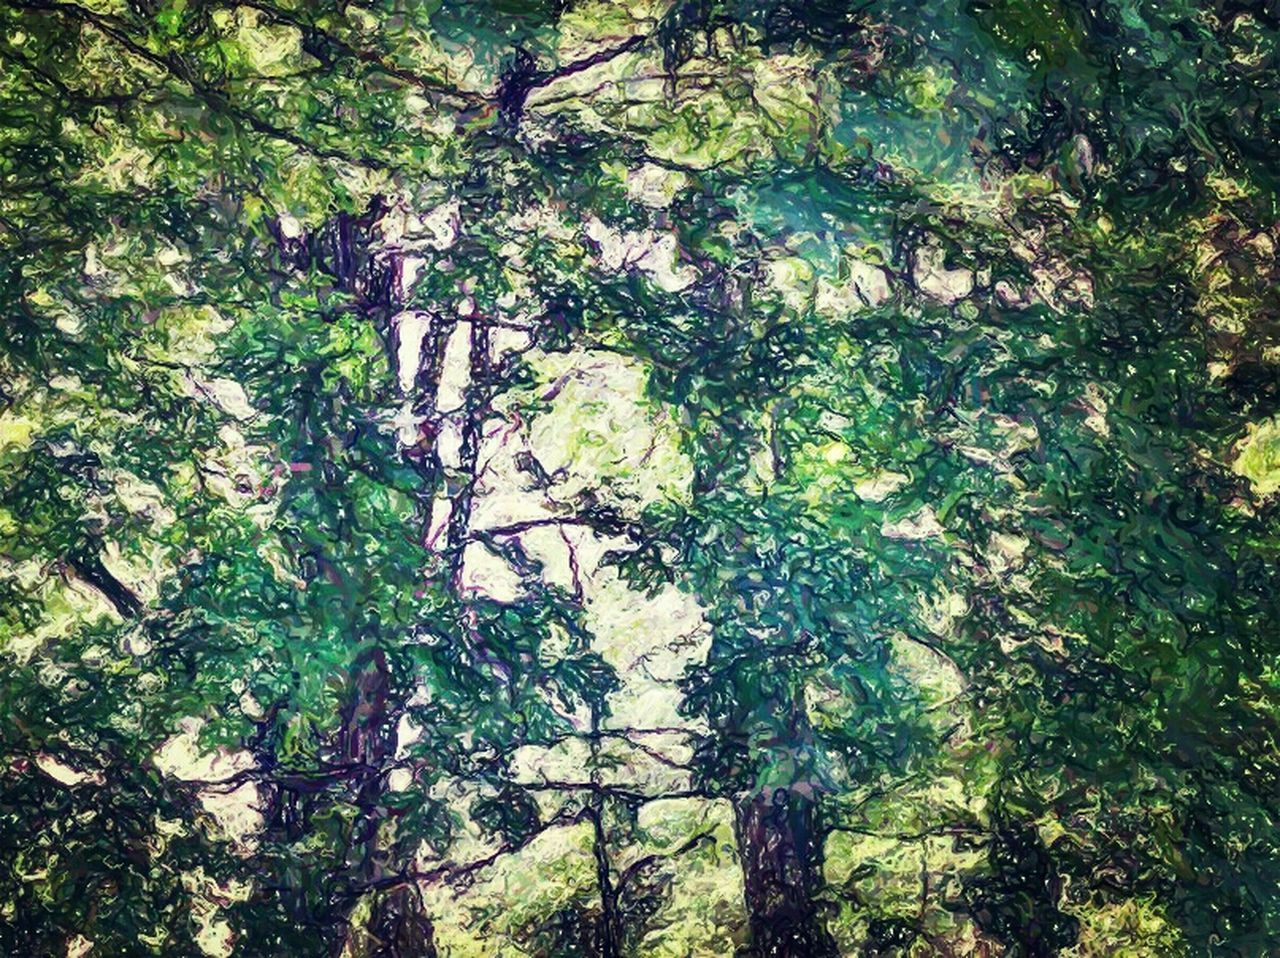 tree, nature, forest, growth, tree trunk, branch, beauty in nature, day, outdoors, no people, green color, plant